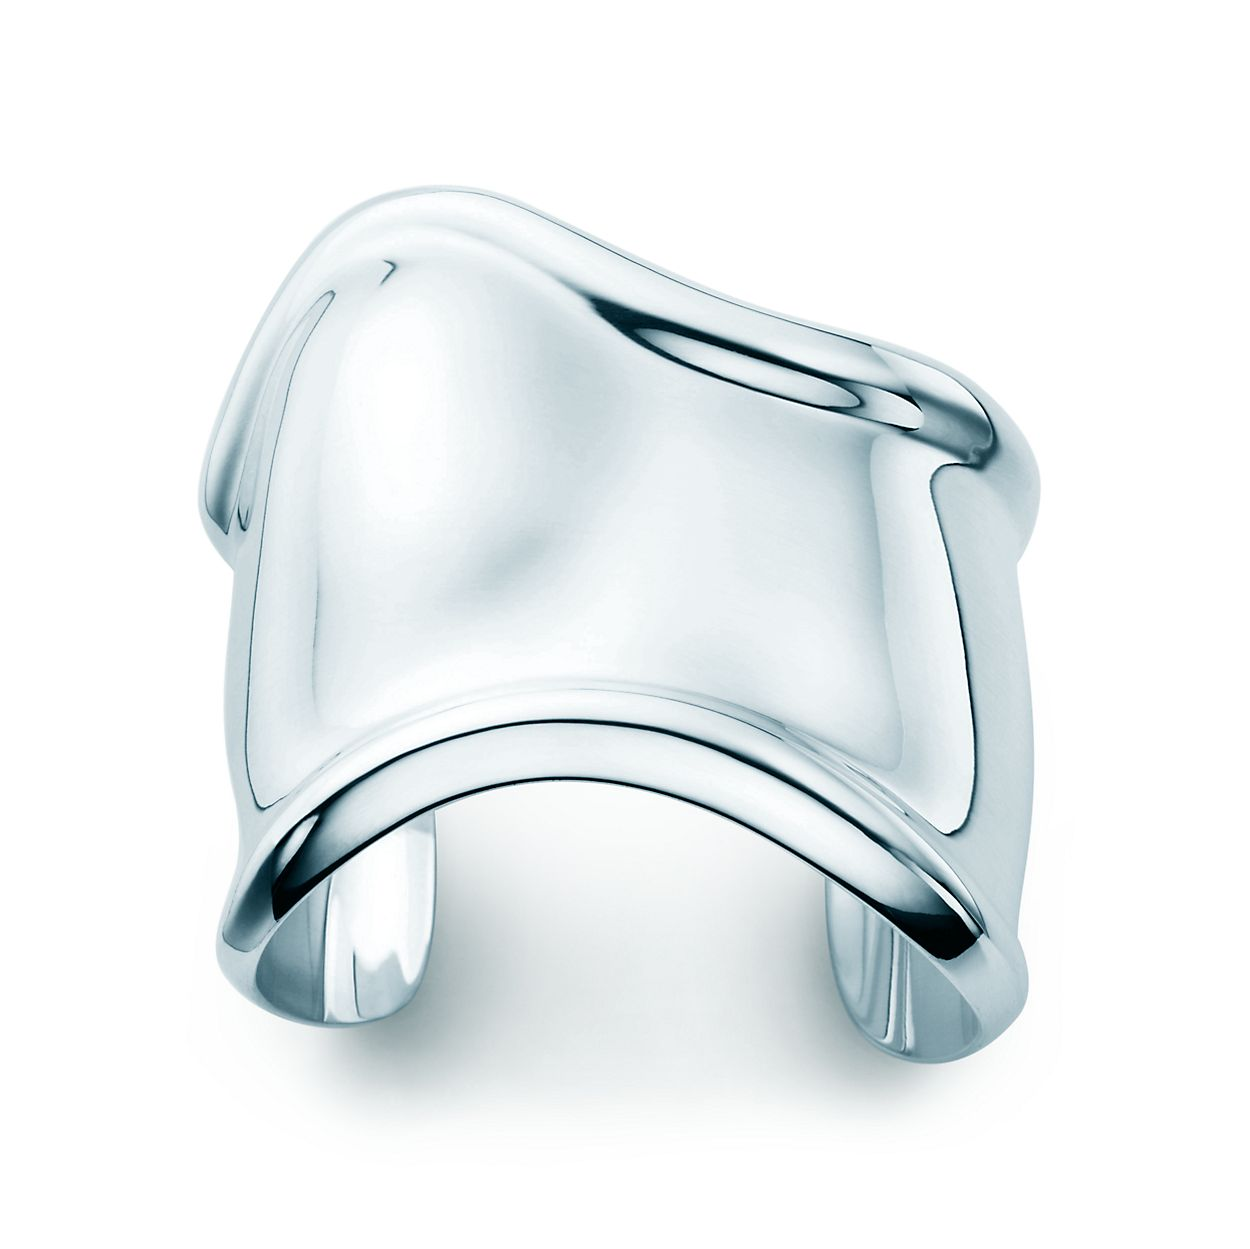 Elsa Peretti Bone cuff in sterling silver, small, right wrist - Size Medium Tiffany & Co.